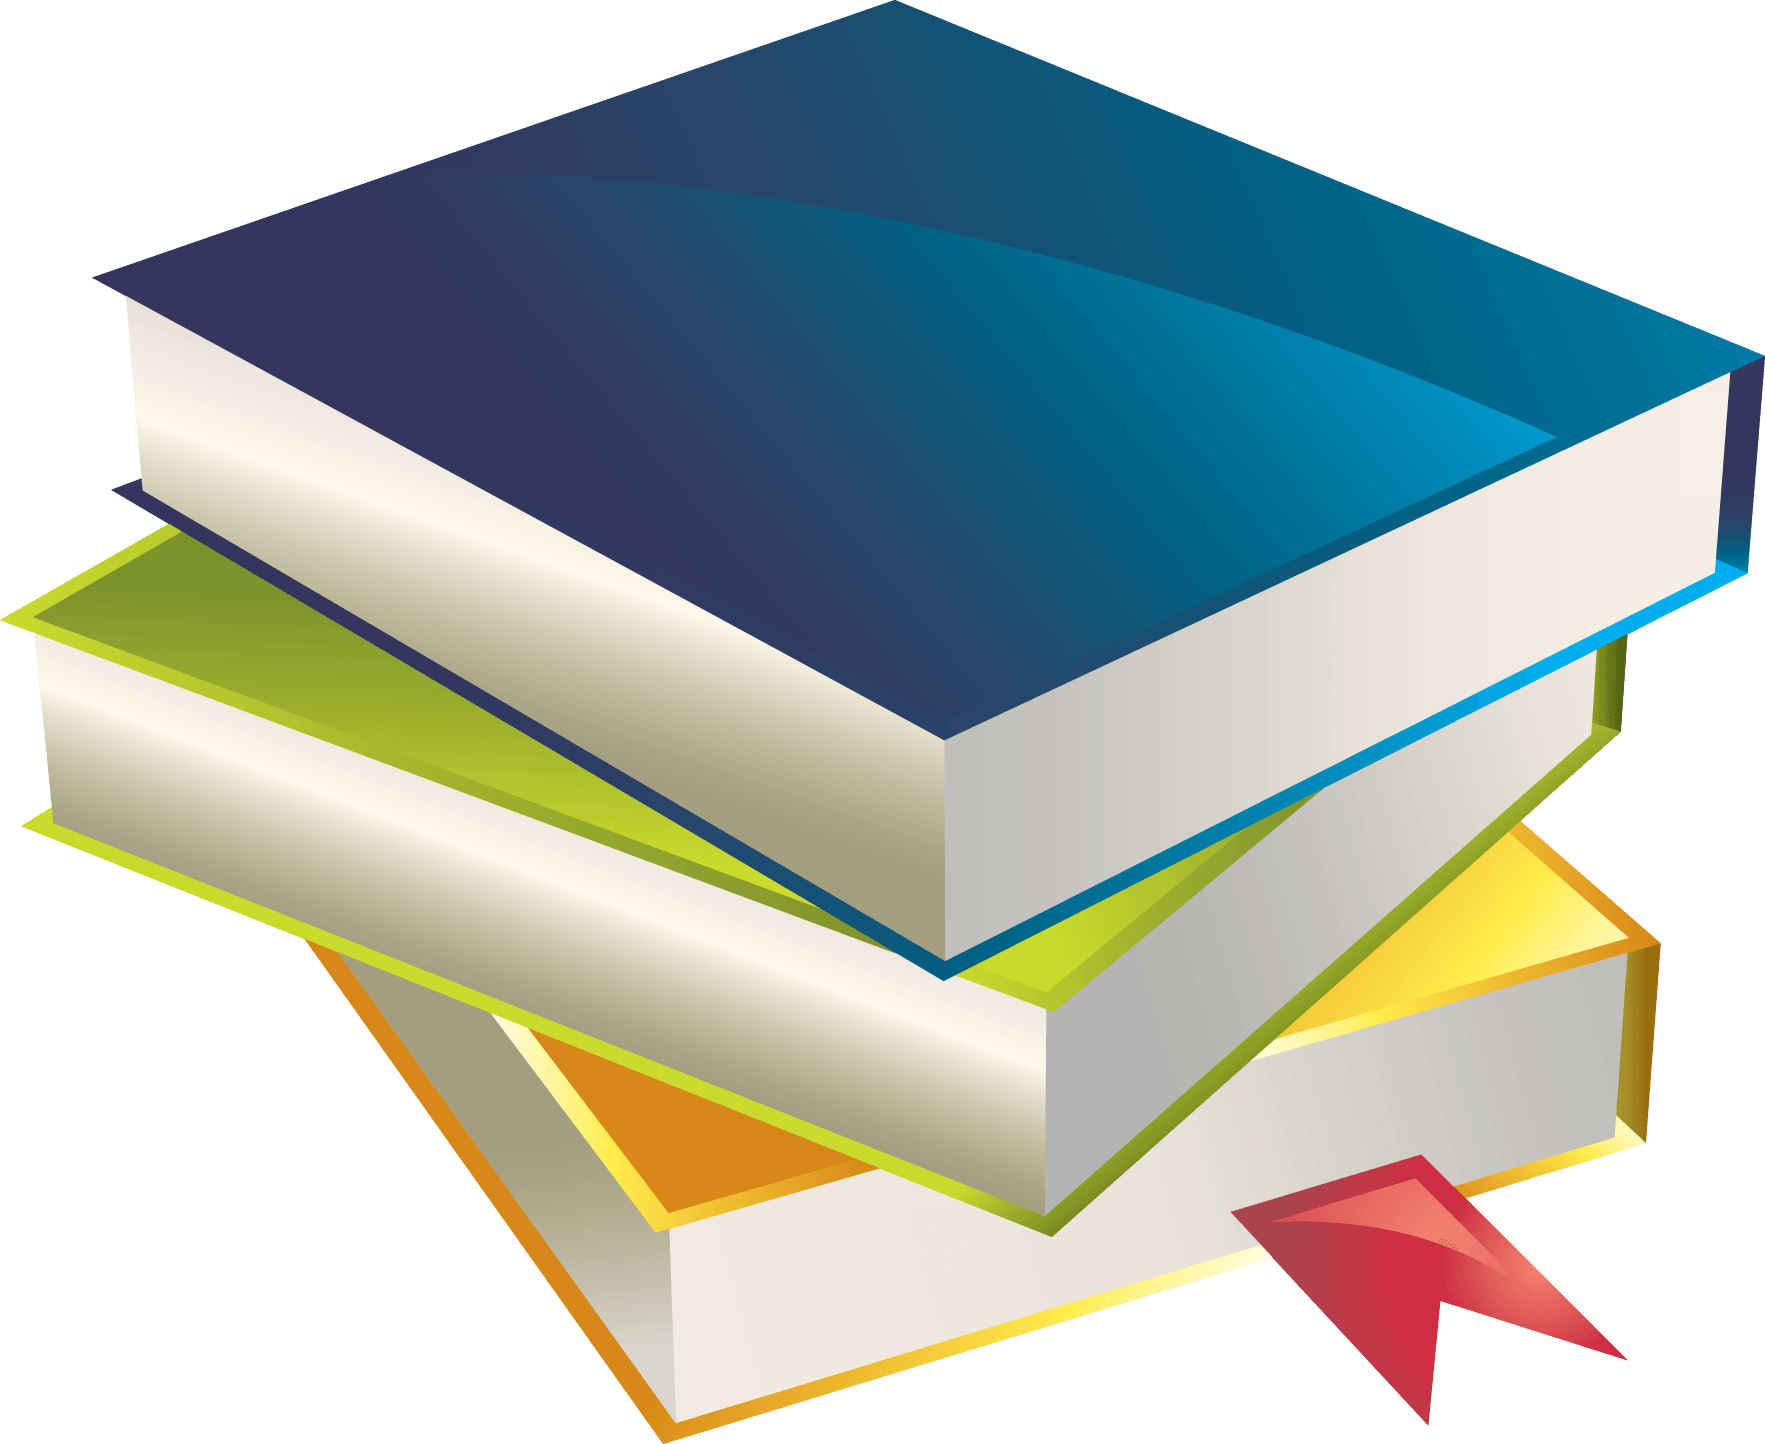 2 Books Png Image.